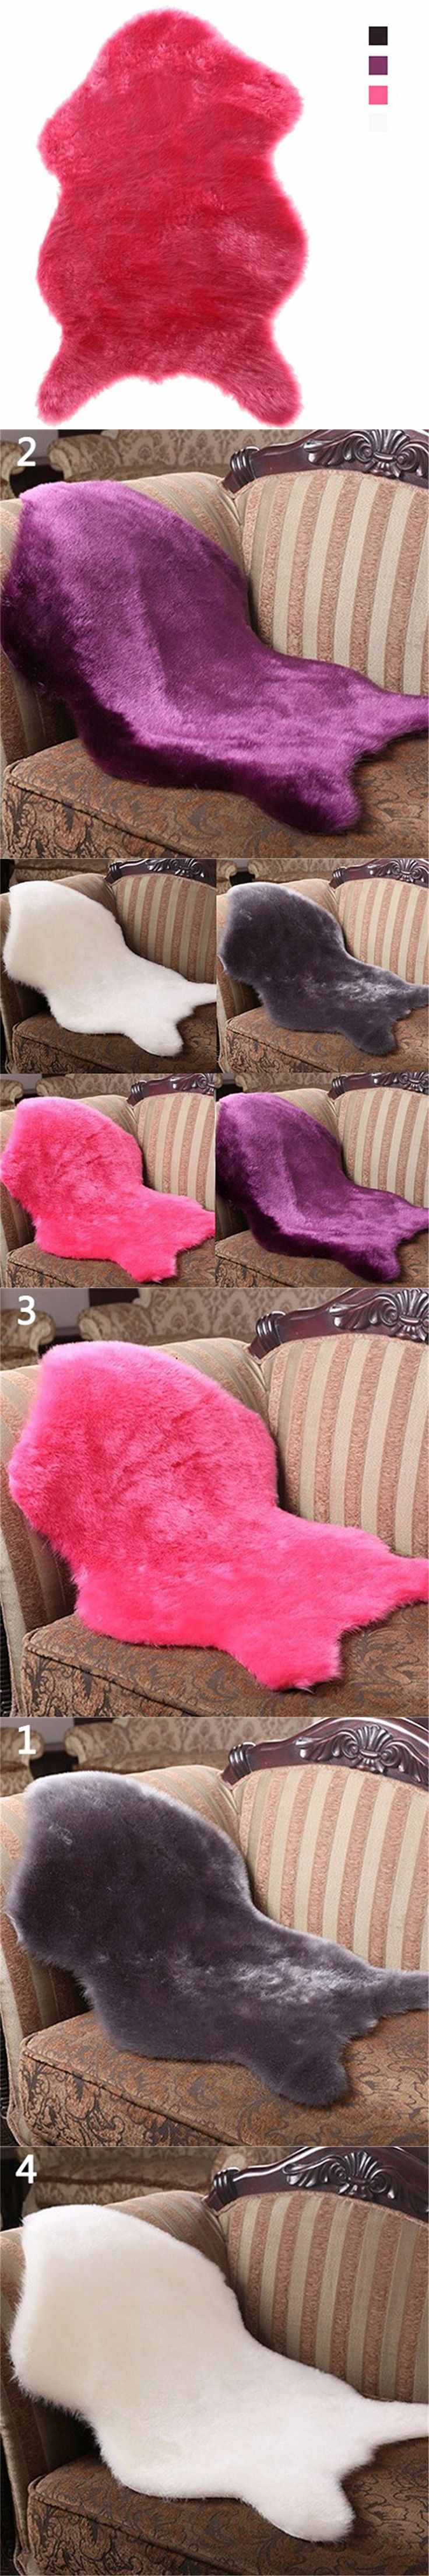 Soft Faux Sheepskin Rug Mat Carpet Pad Anti-Slip Chair Sofa Cover Home Decoration Grey Purple Rose Red White 4 Colors for Choose